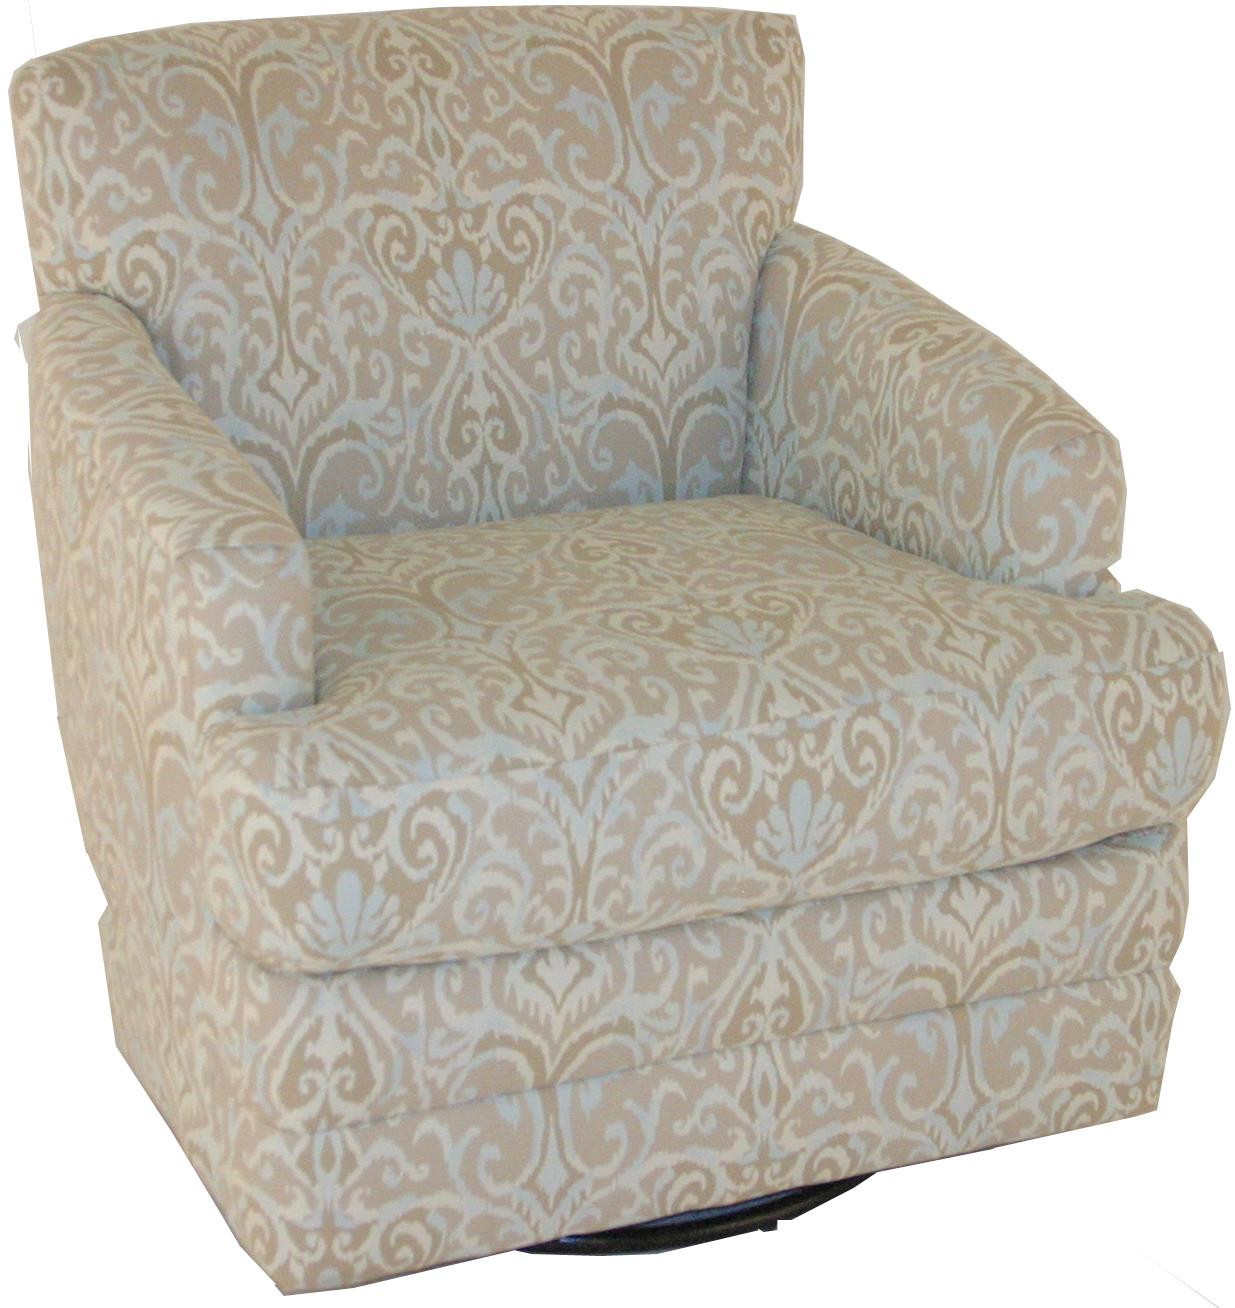 Chairs America Accent Chairs And Ottomans 1424SW